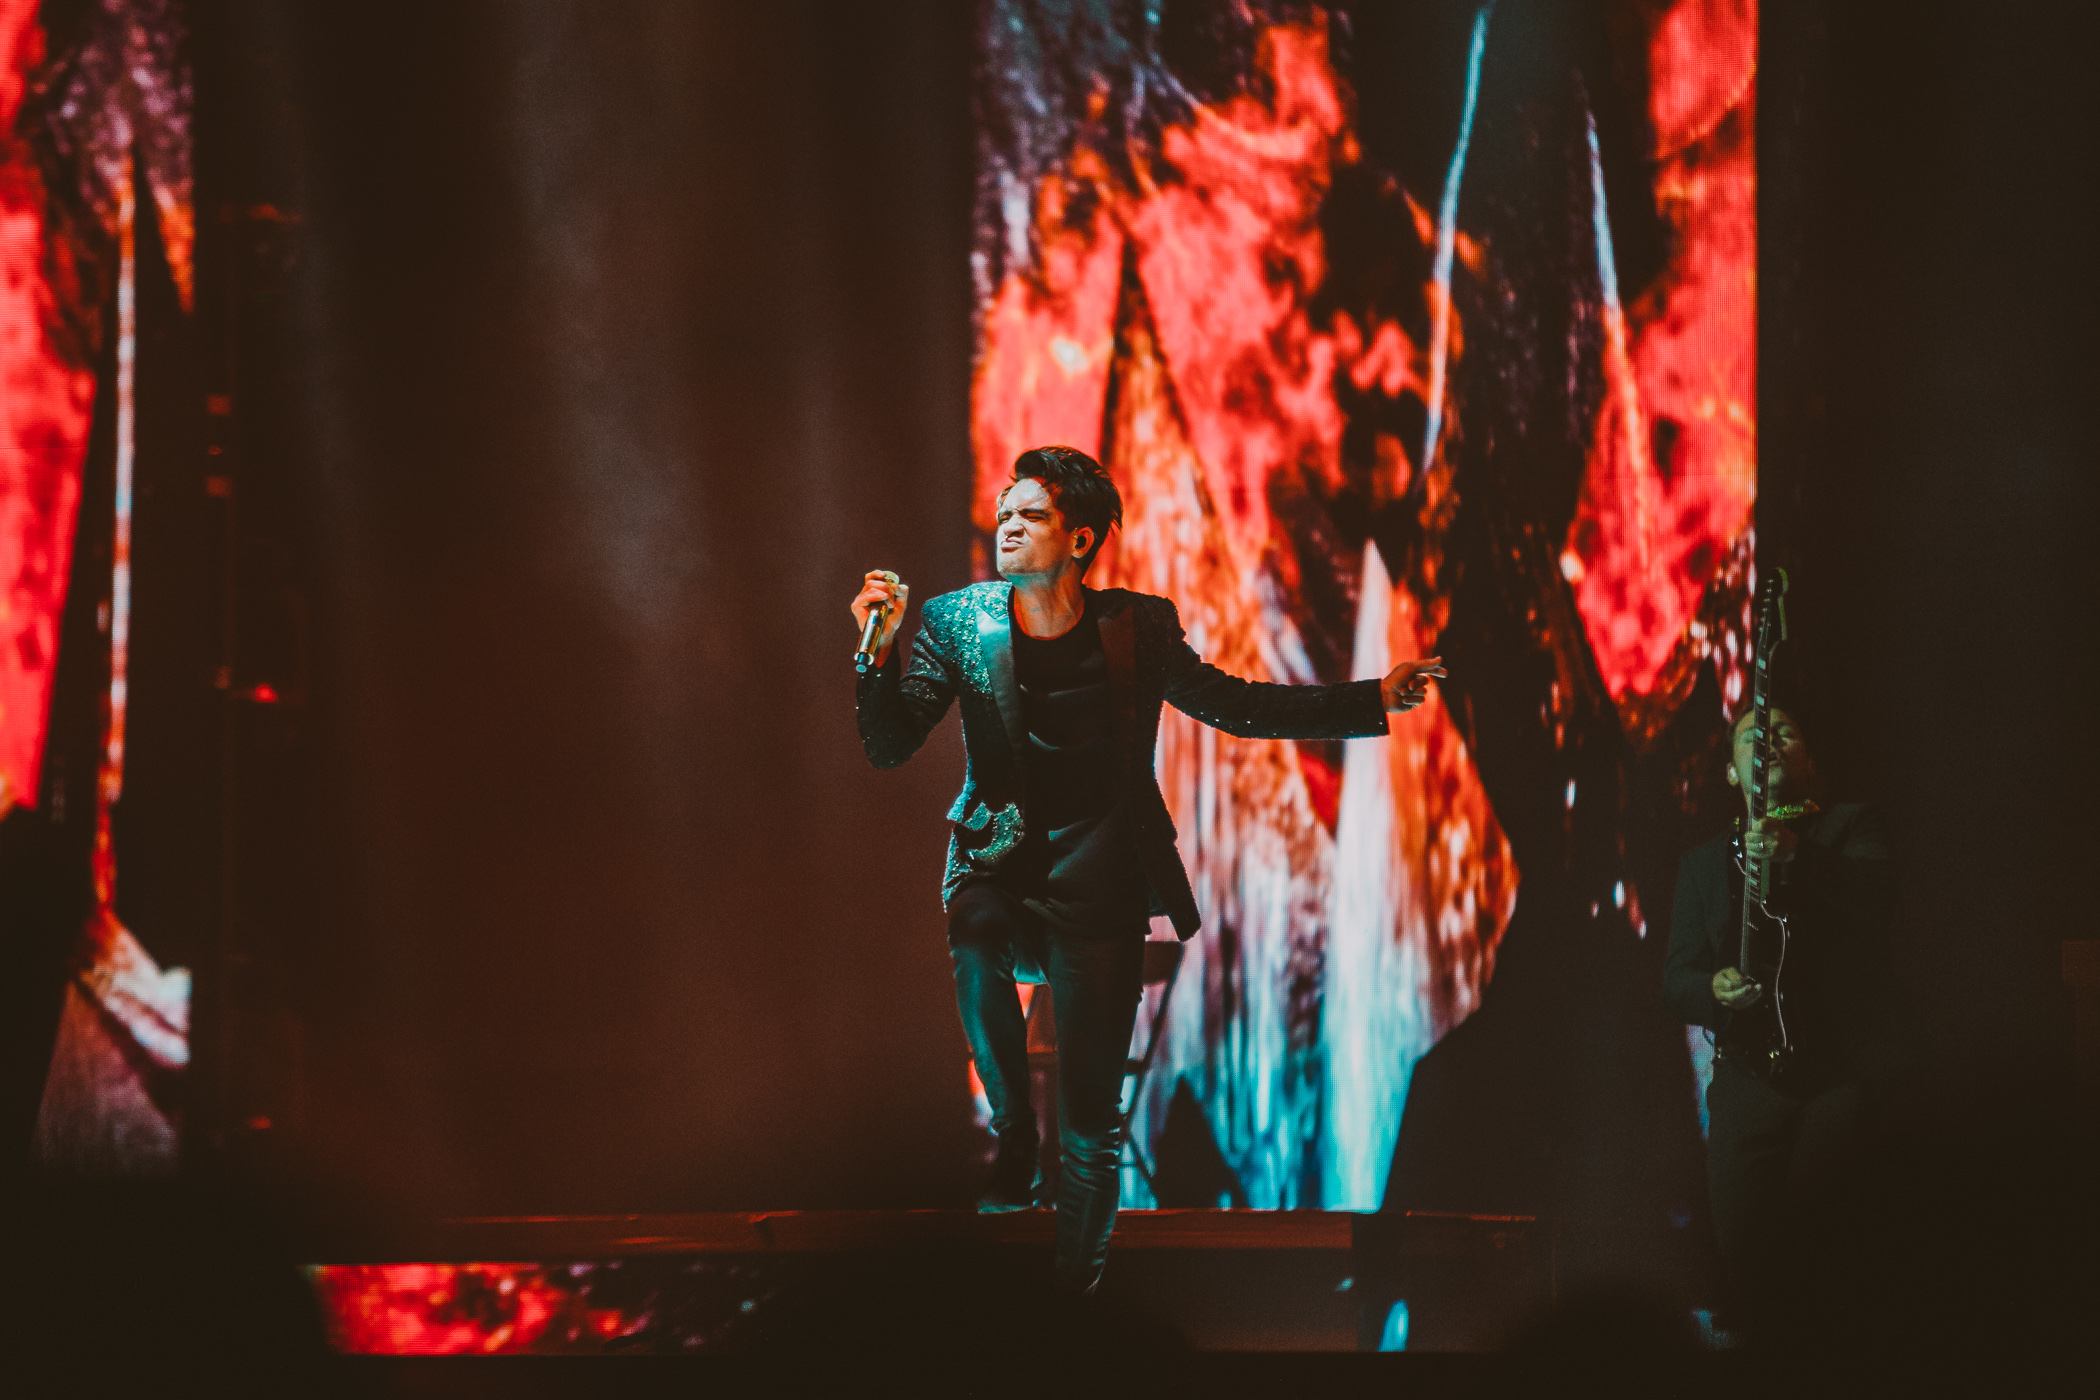 1_Panic!_At_The_Disco-Rogers_Arena-Timothy_Nguyen-20180811-1.jpg